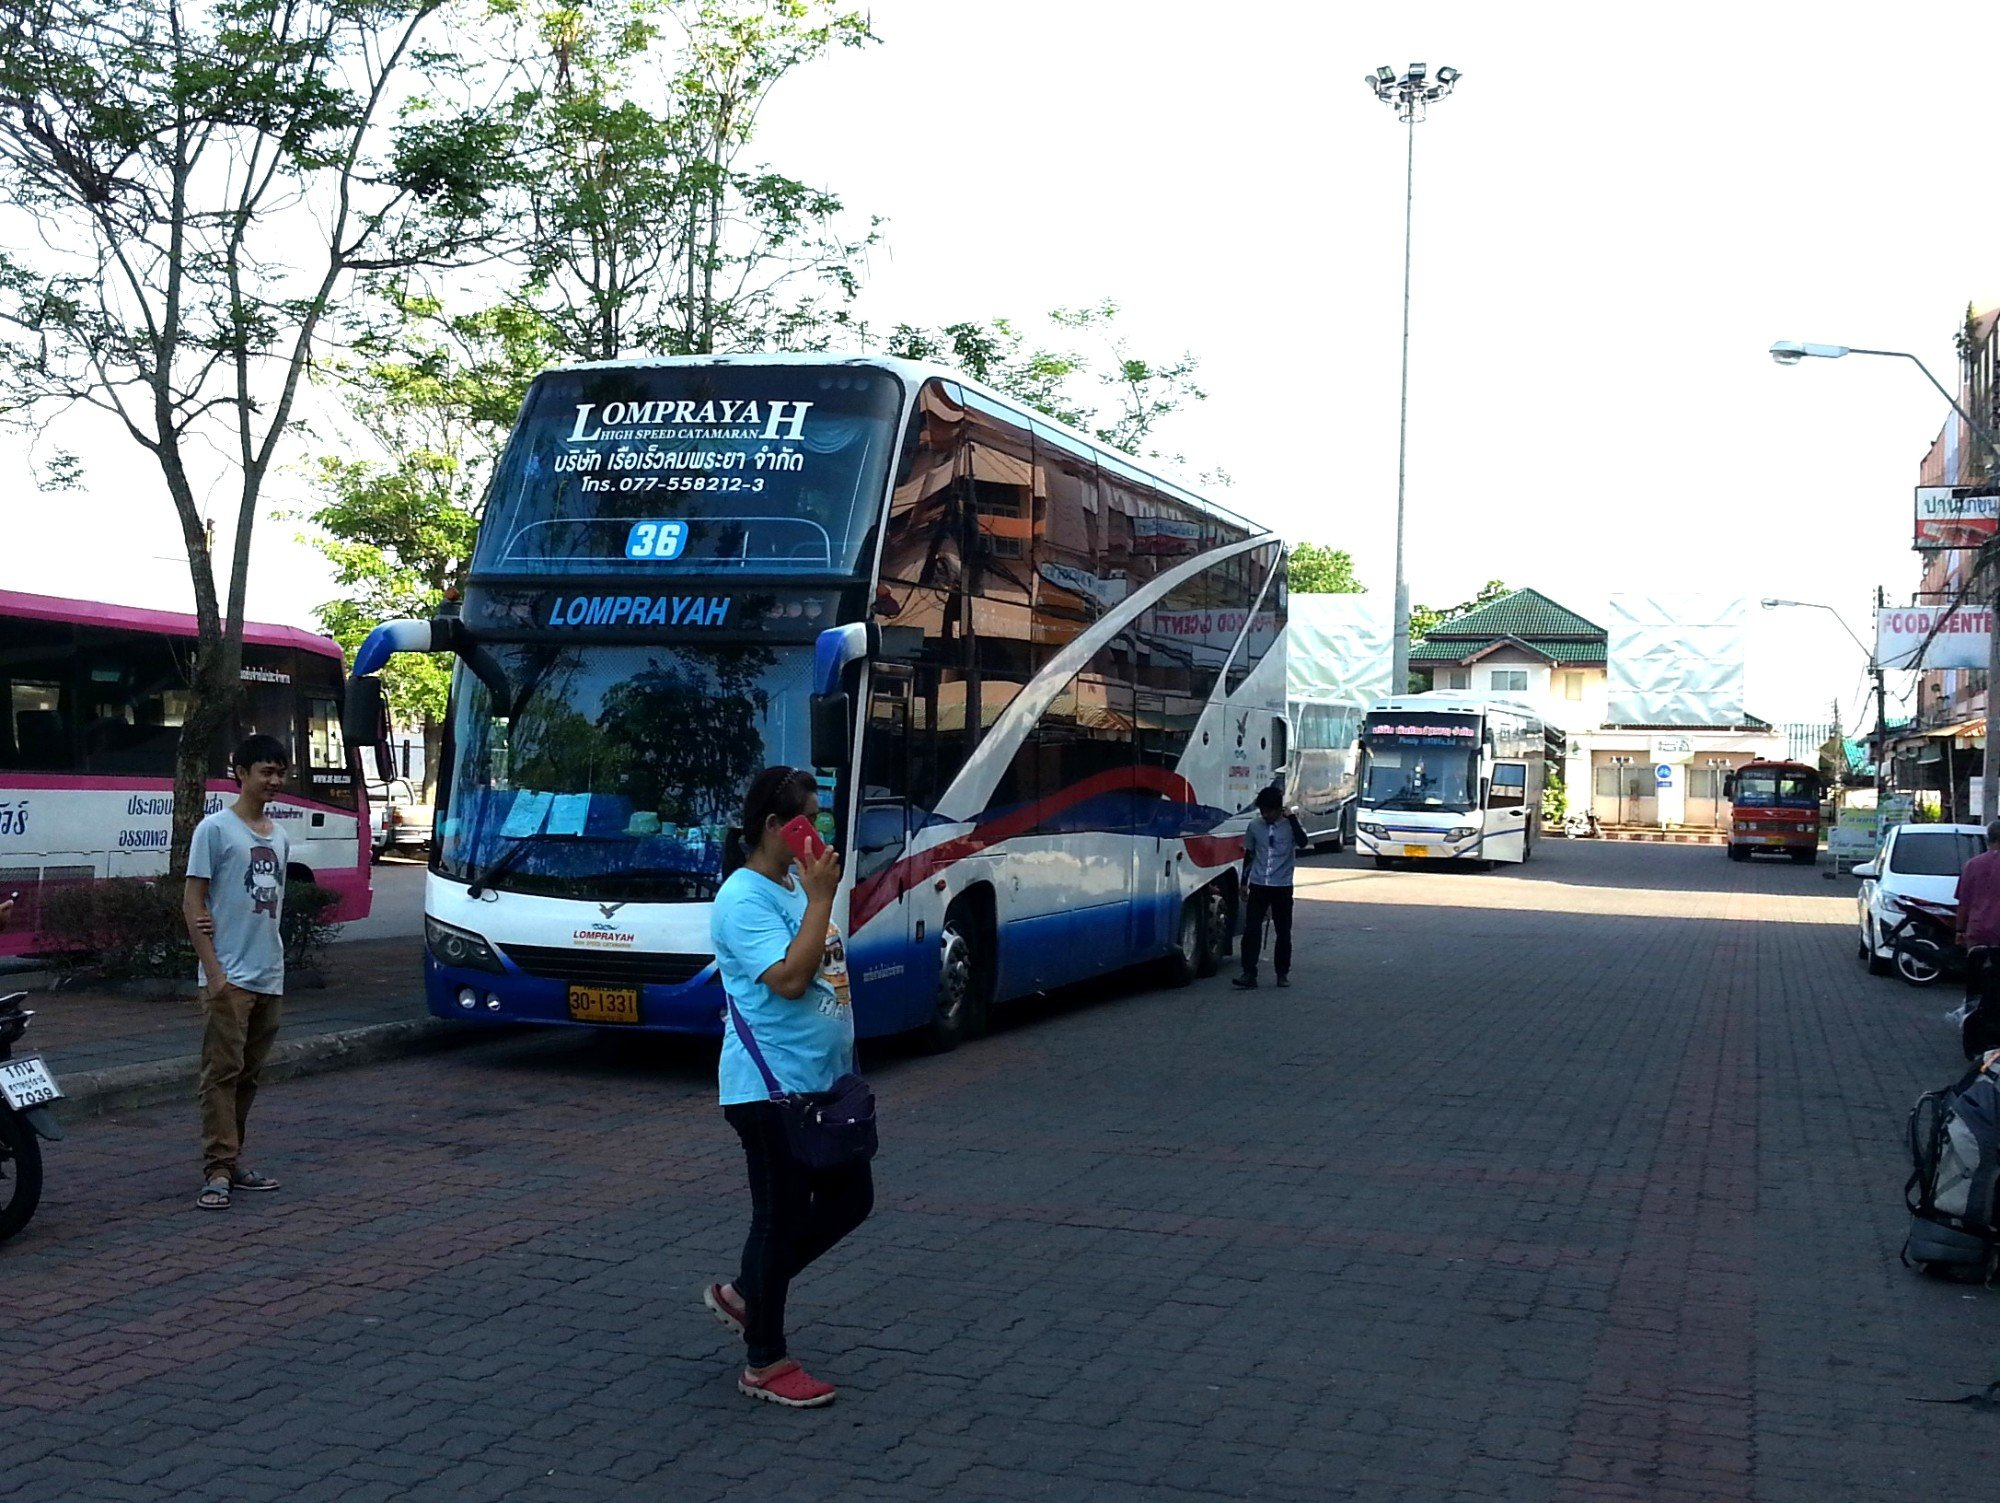 Lomprayah Bus at Surat Thani Railway Station